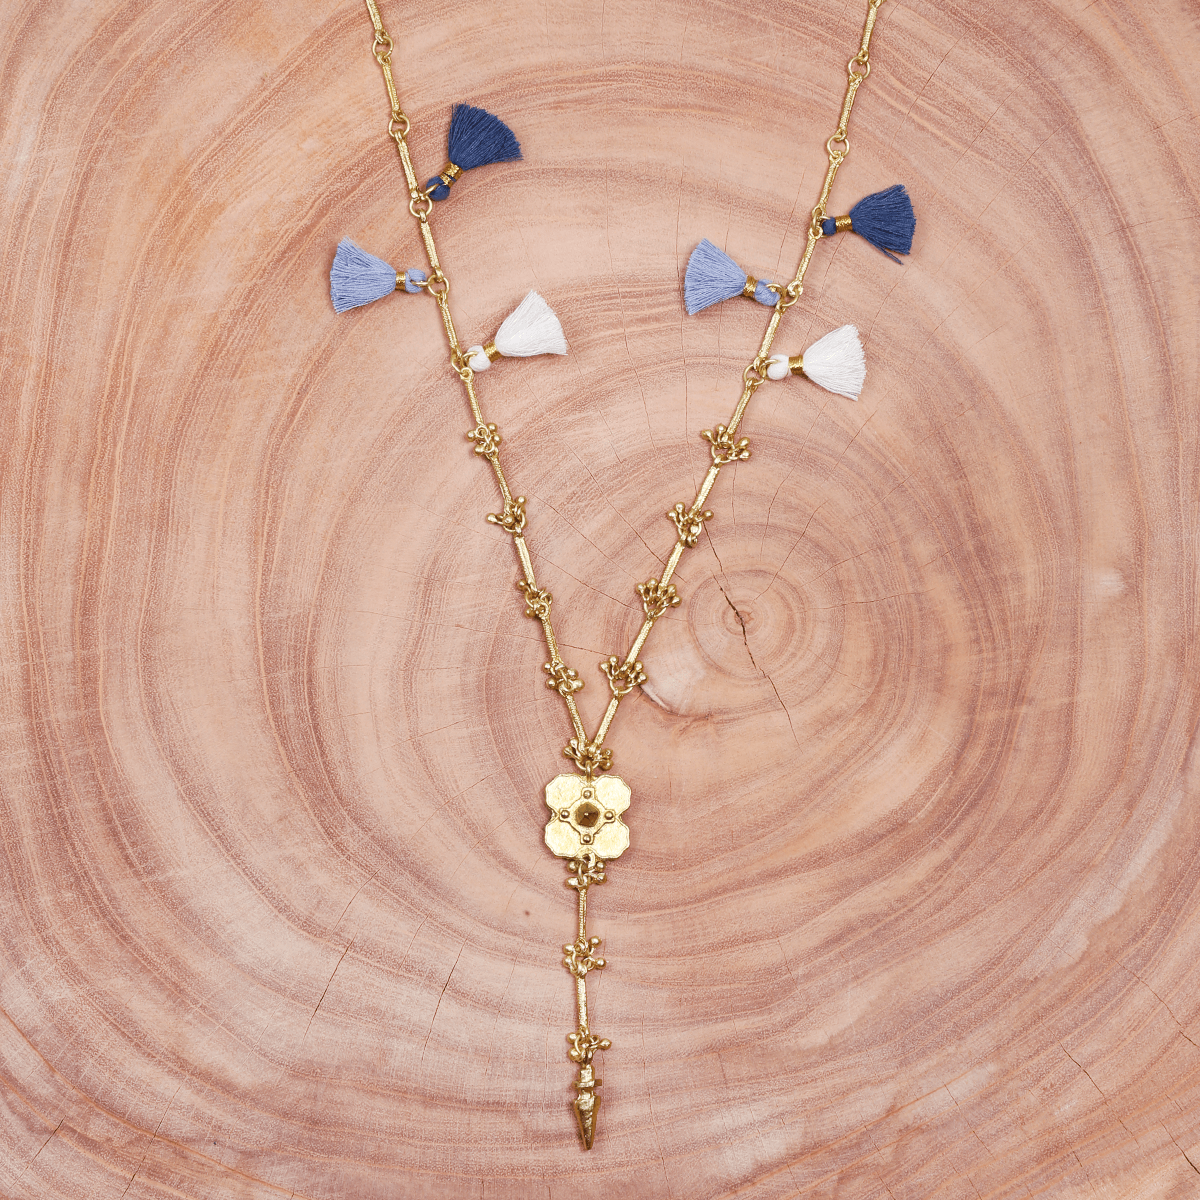 Bohemian Tassel and Metal Necklace - Blue & Gold